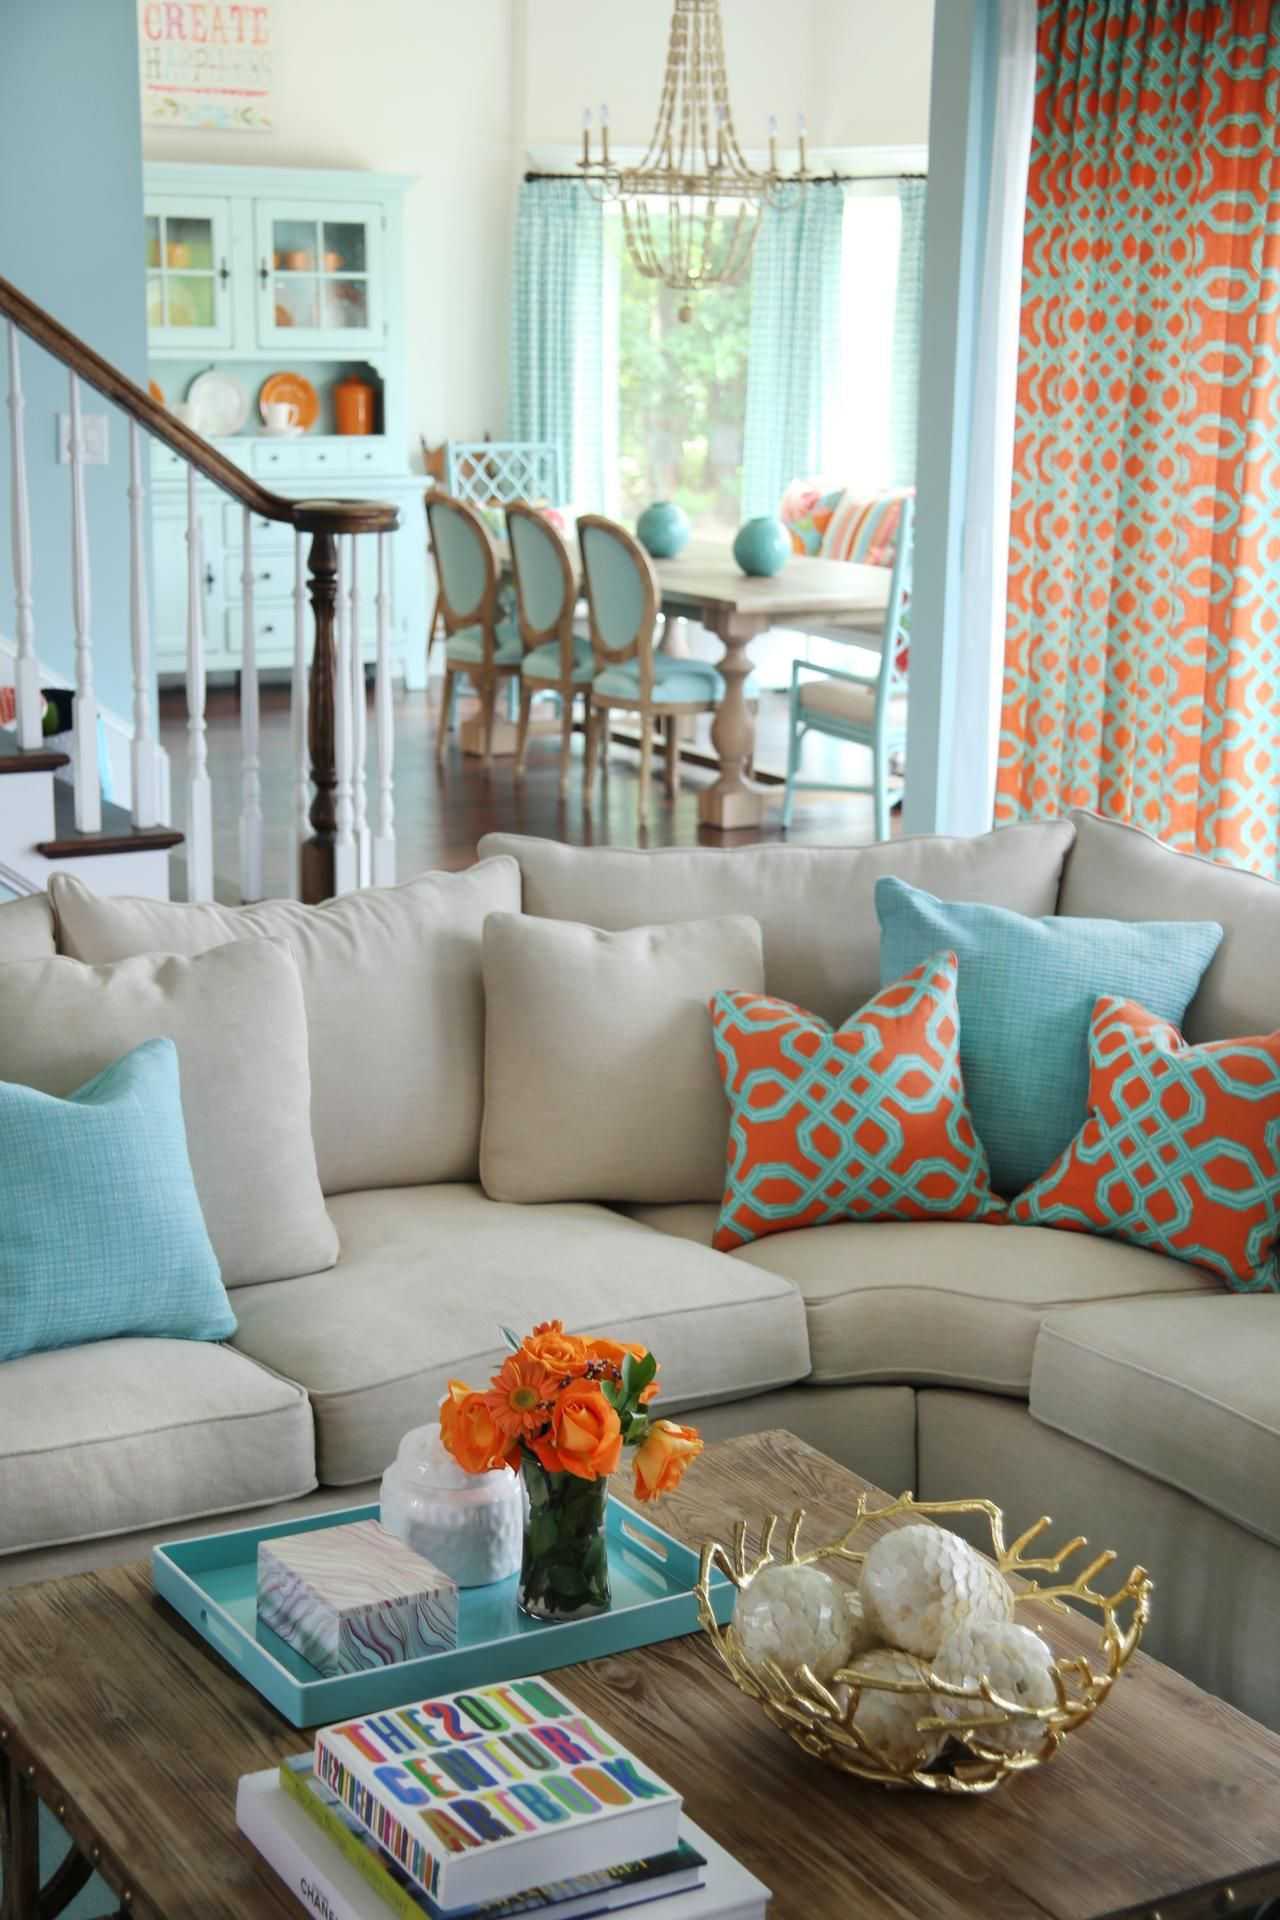 20 Accessories To Help Create A Perfectly Styled Coffee Table Beach House Interior Design Summer Interior Design House Of Turquoise